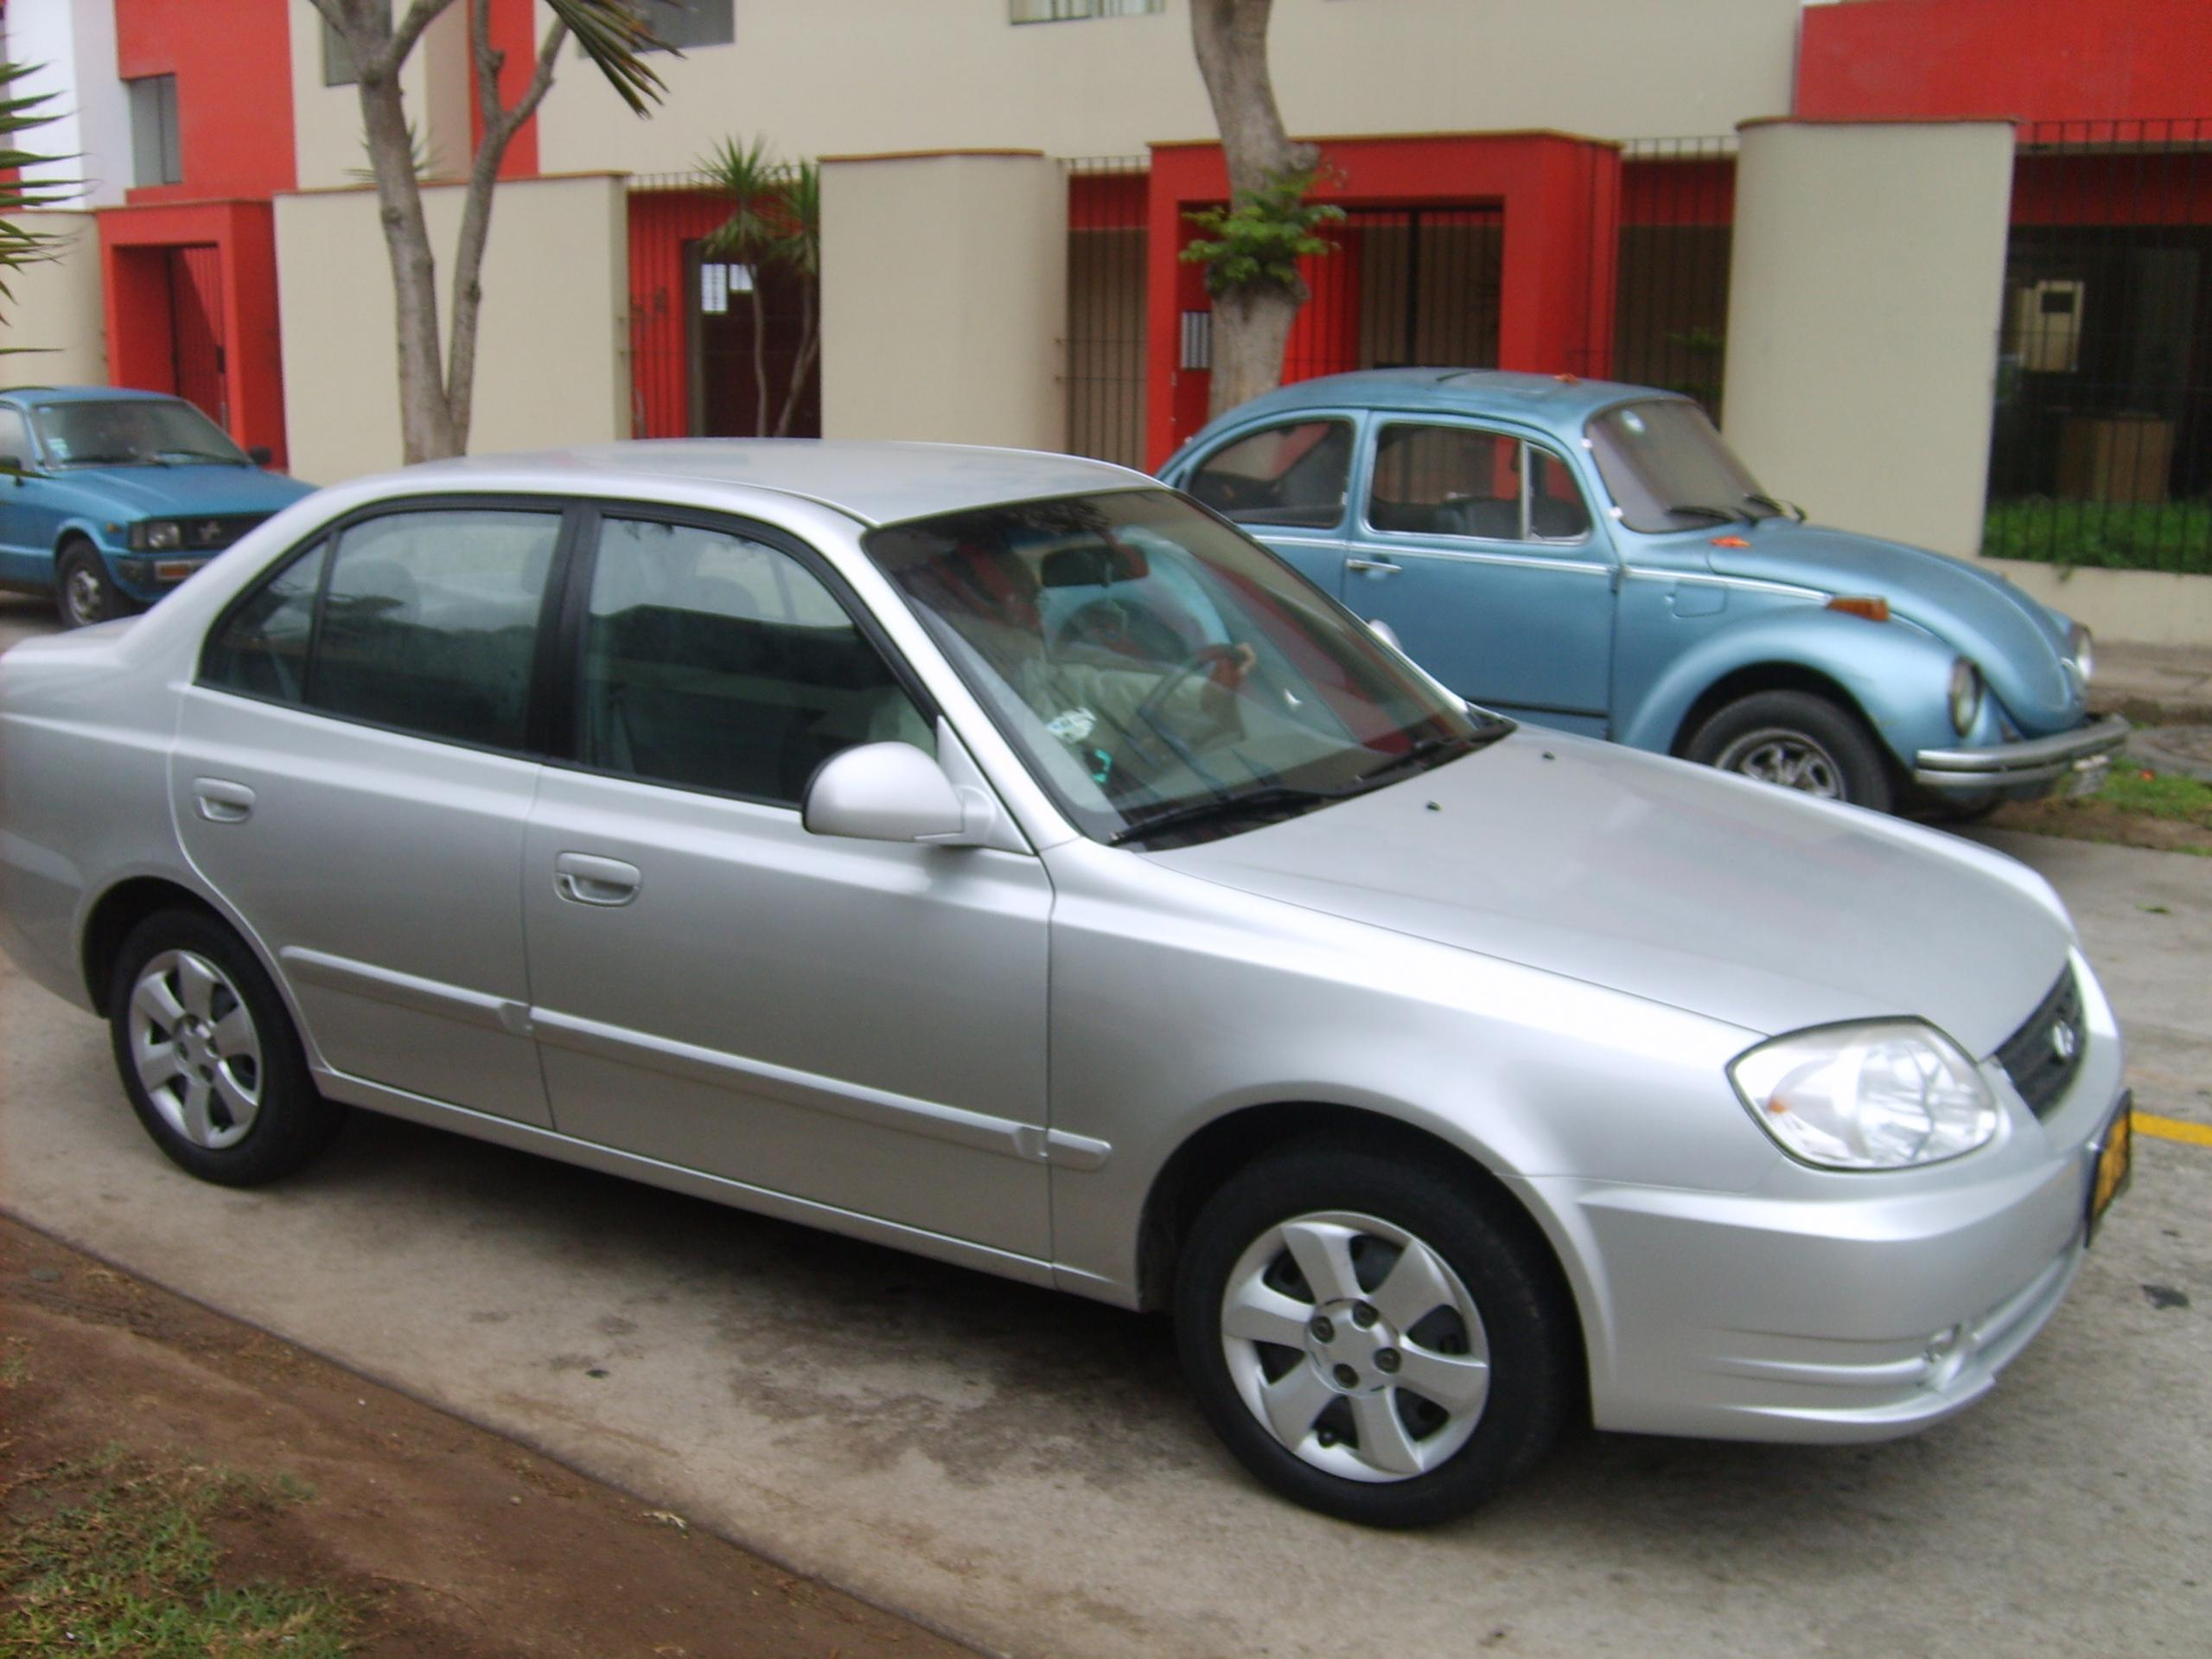 2004 hyundai accent ii pictures information and specs. Black Bedroom Furniture Sets. Home Design Ideas